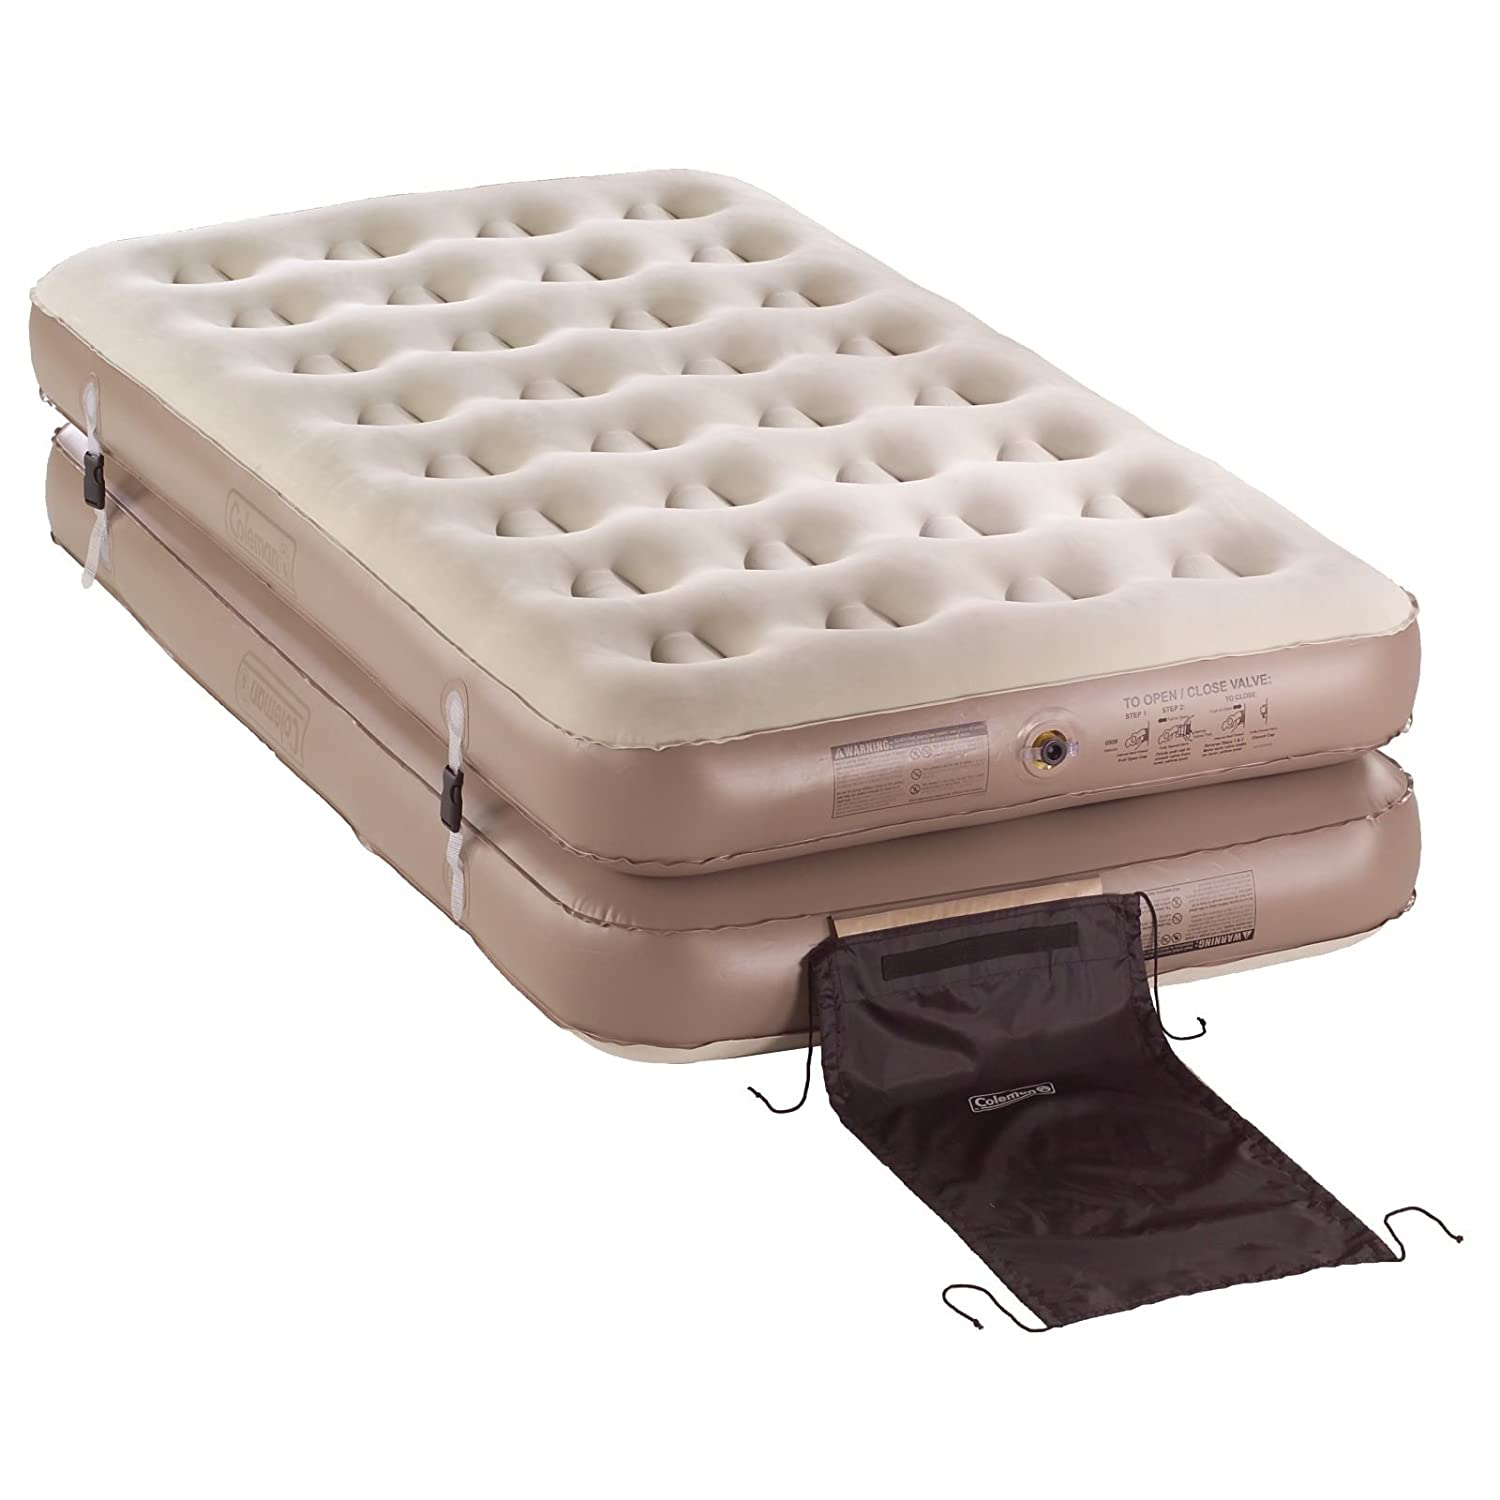 sports with camping mattress mattresses pillow amazon outdoors pump dp air queen com flat never raised bed insta top